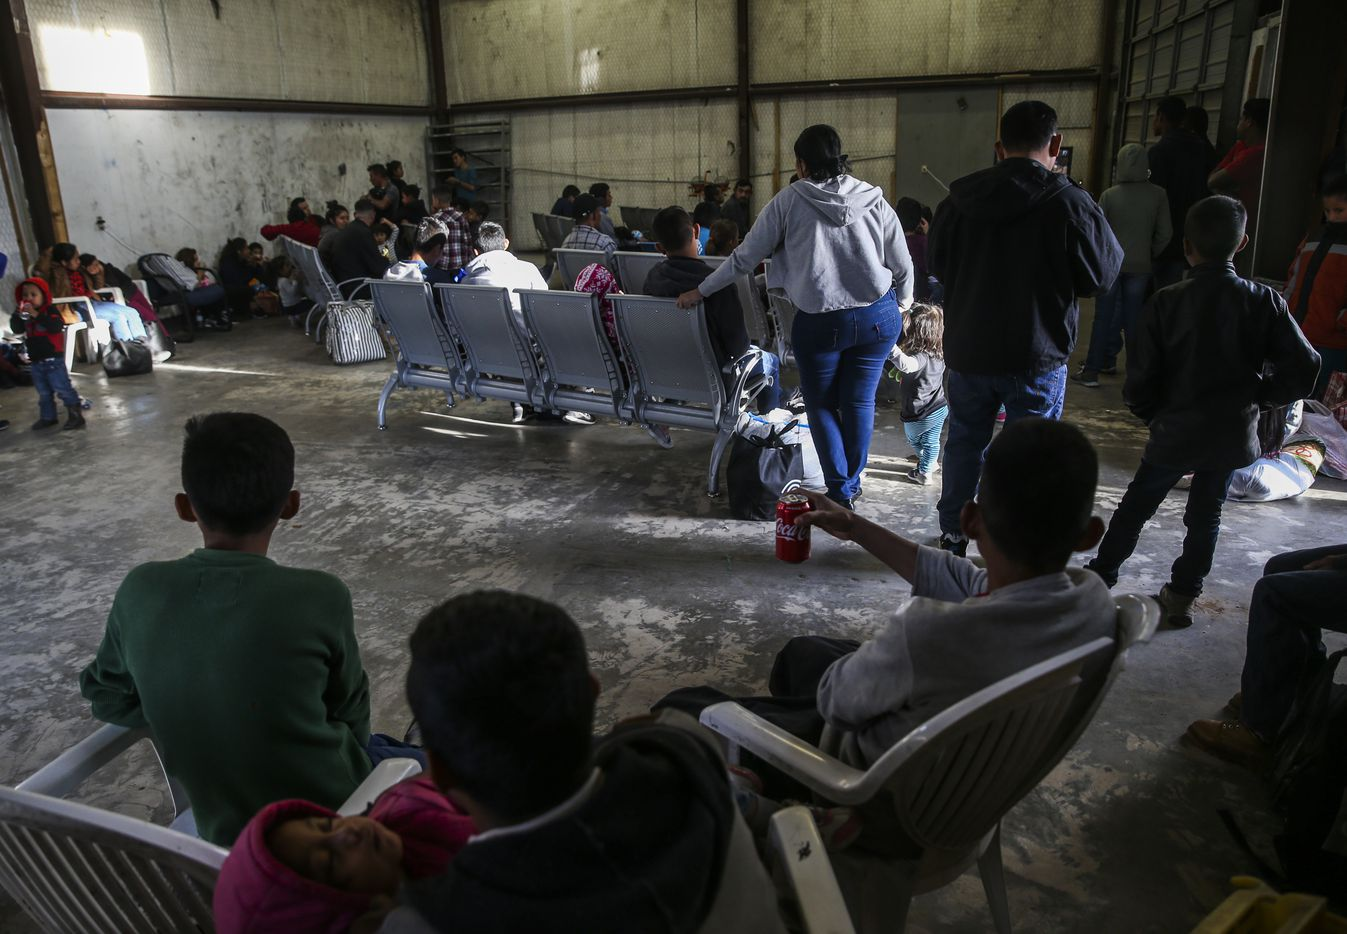 A group of people, mostly Central American migrant asylum seekers, wait in the waiting room of a Tornado Bus station in El Paso, Texas, on Saturday, March 30, 2019.